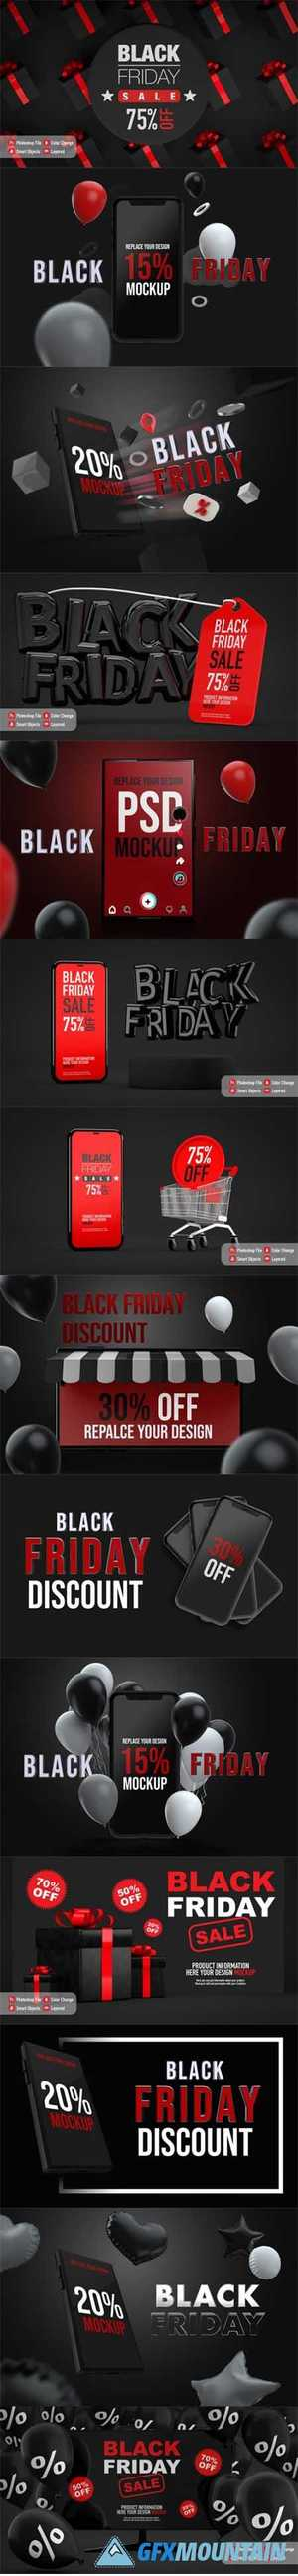 Poster black friday mockup